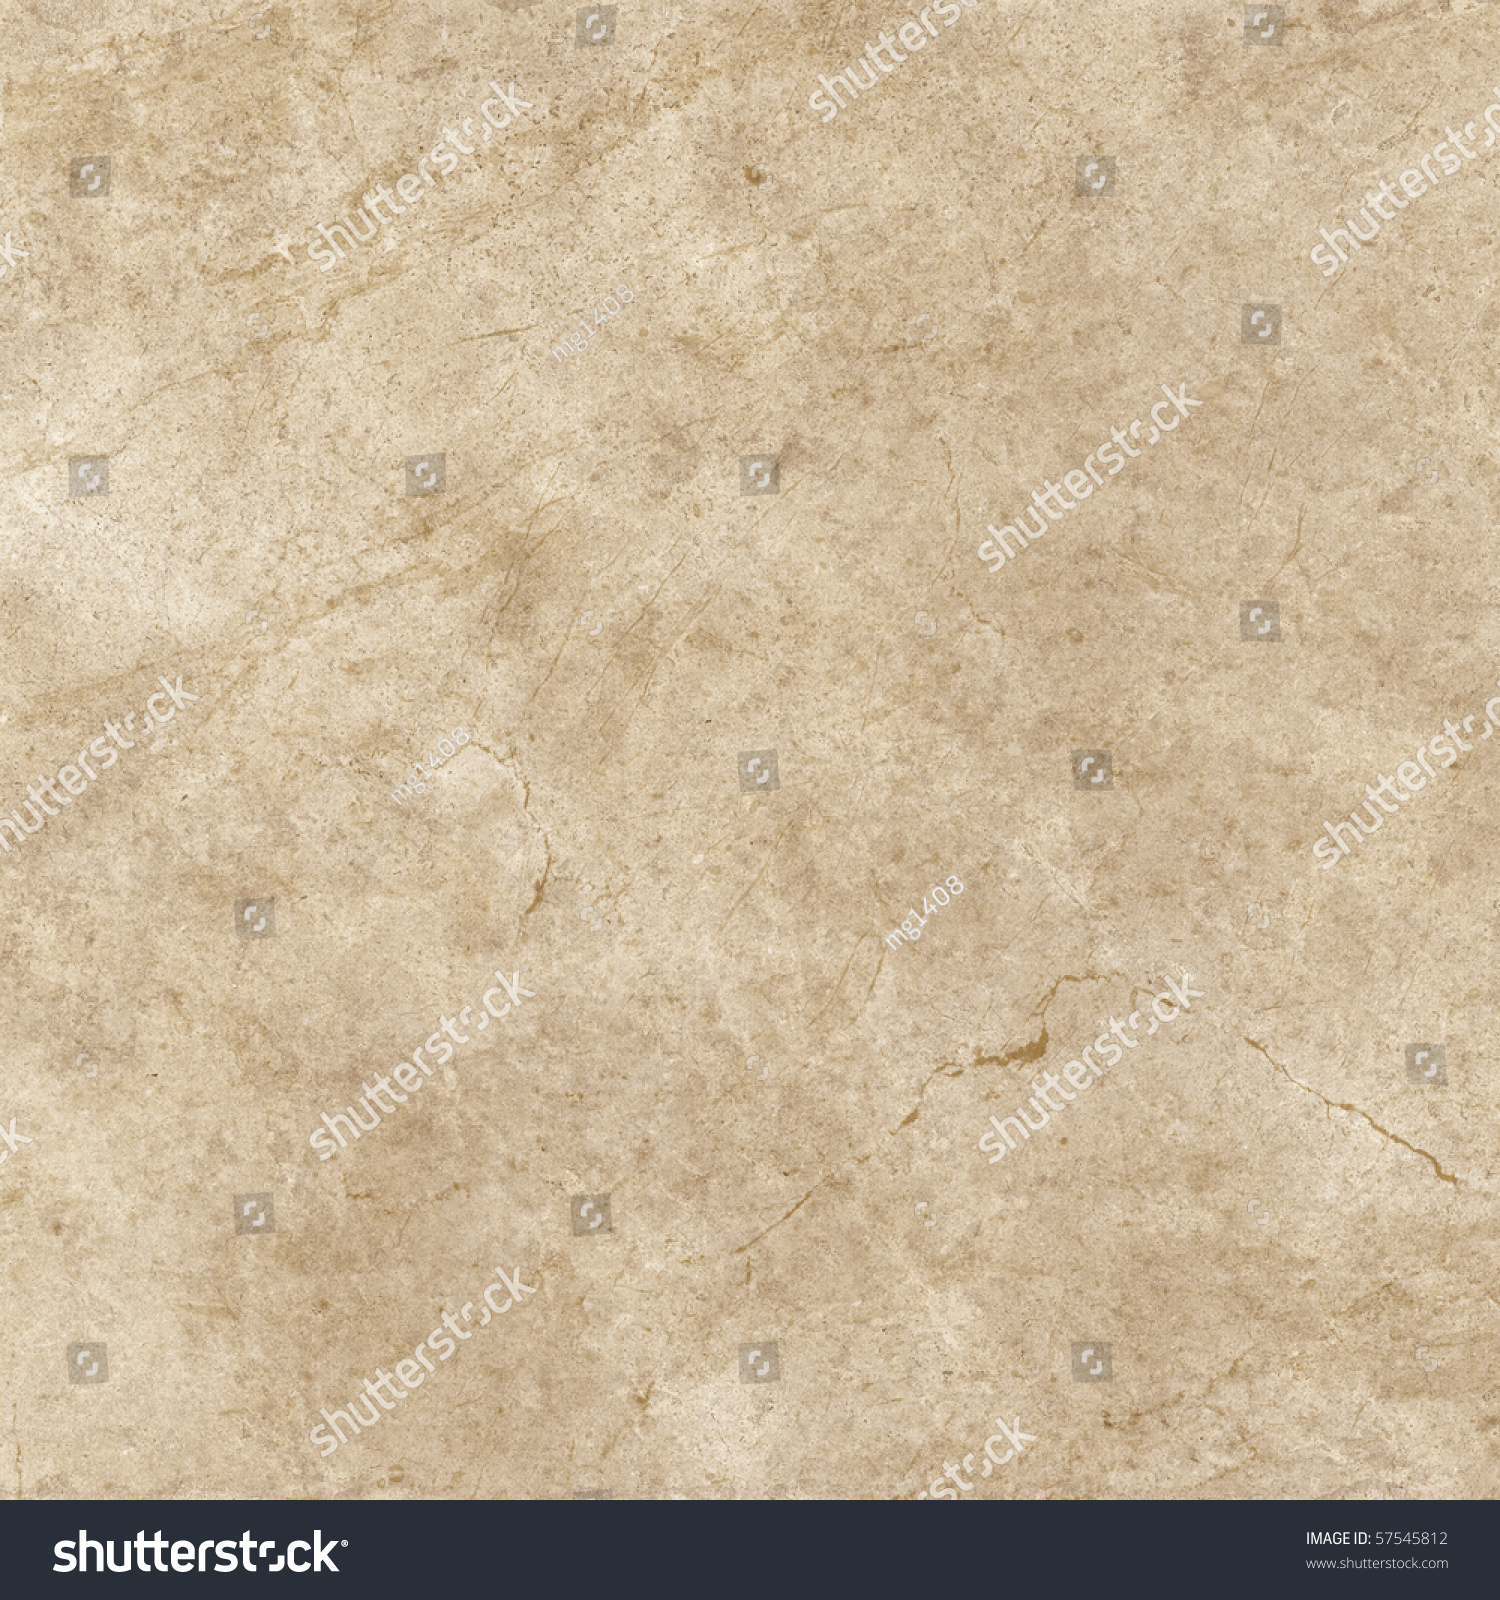 Light Brown Marble : High res light brown marble texture stock photo